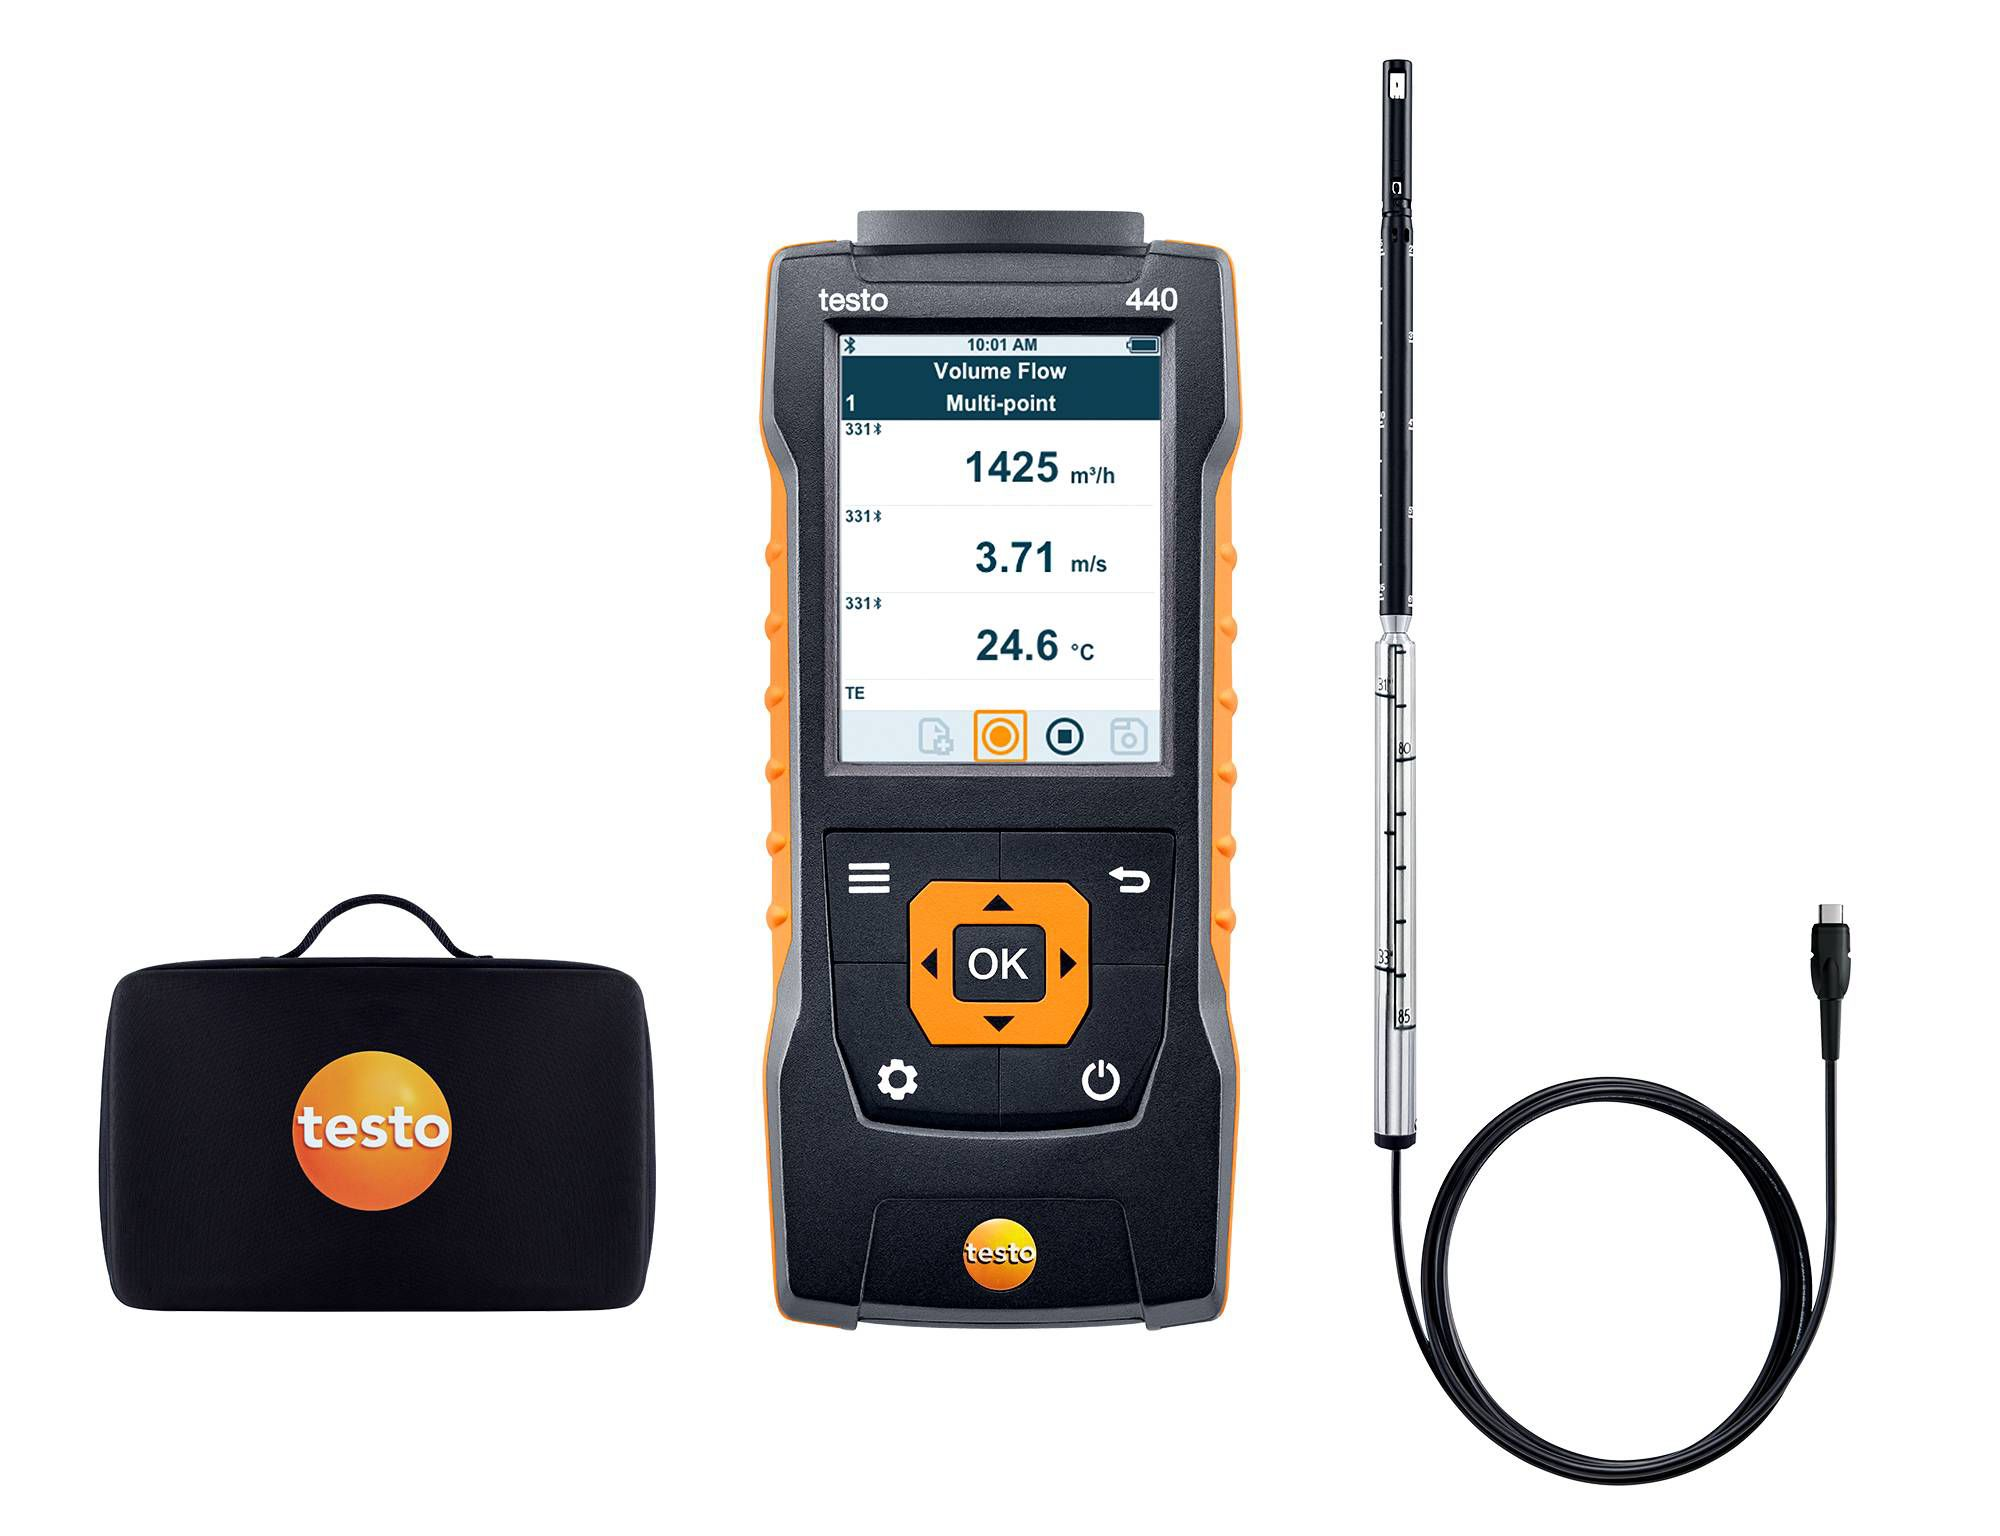 testo 440 Hot Wire Kit